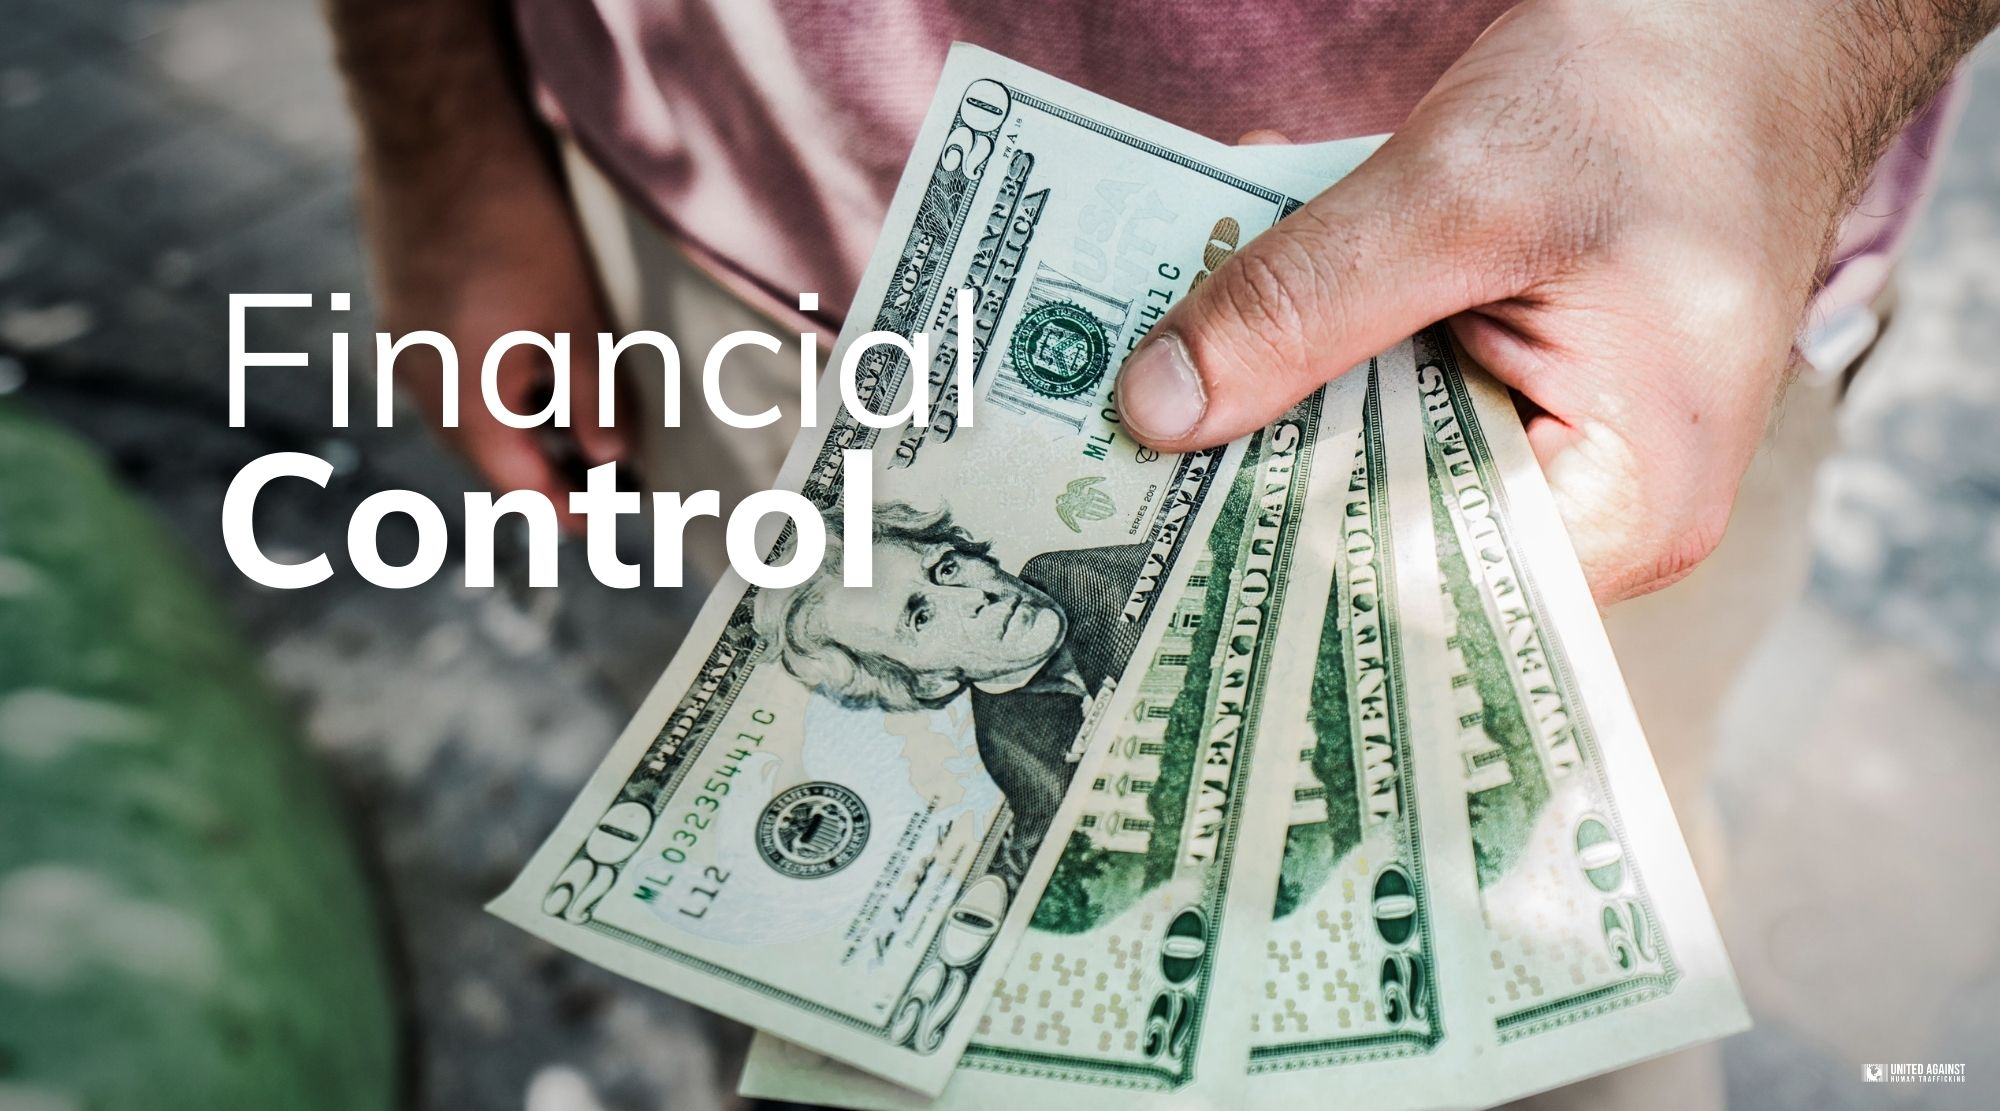 Control over finances can indicate human labor trafficking